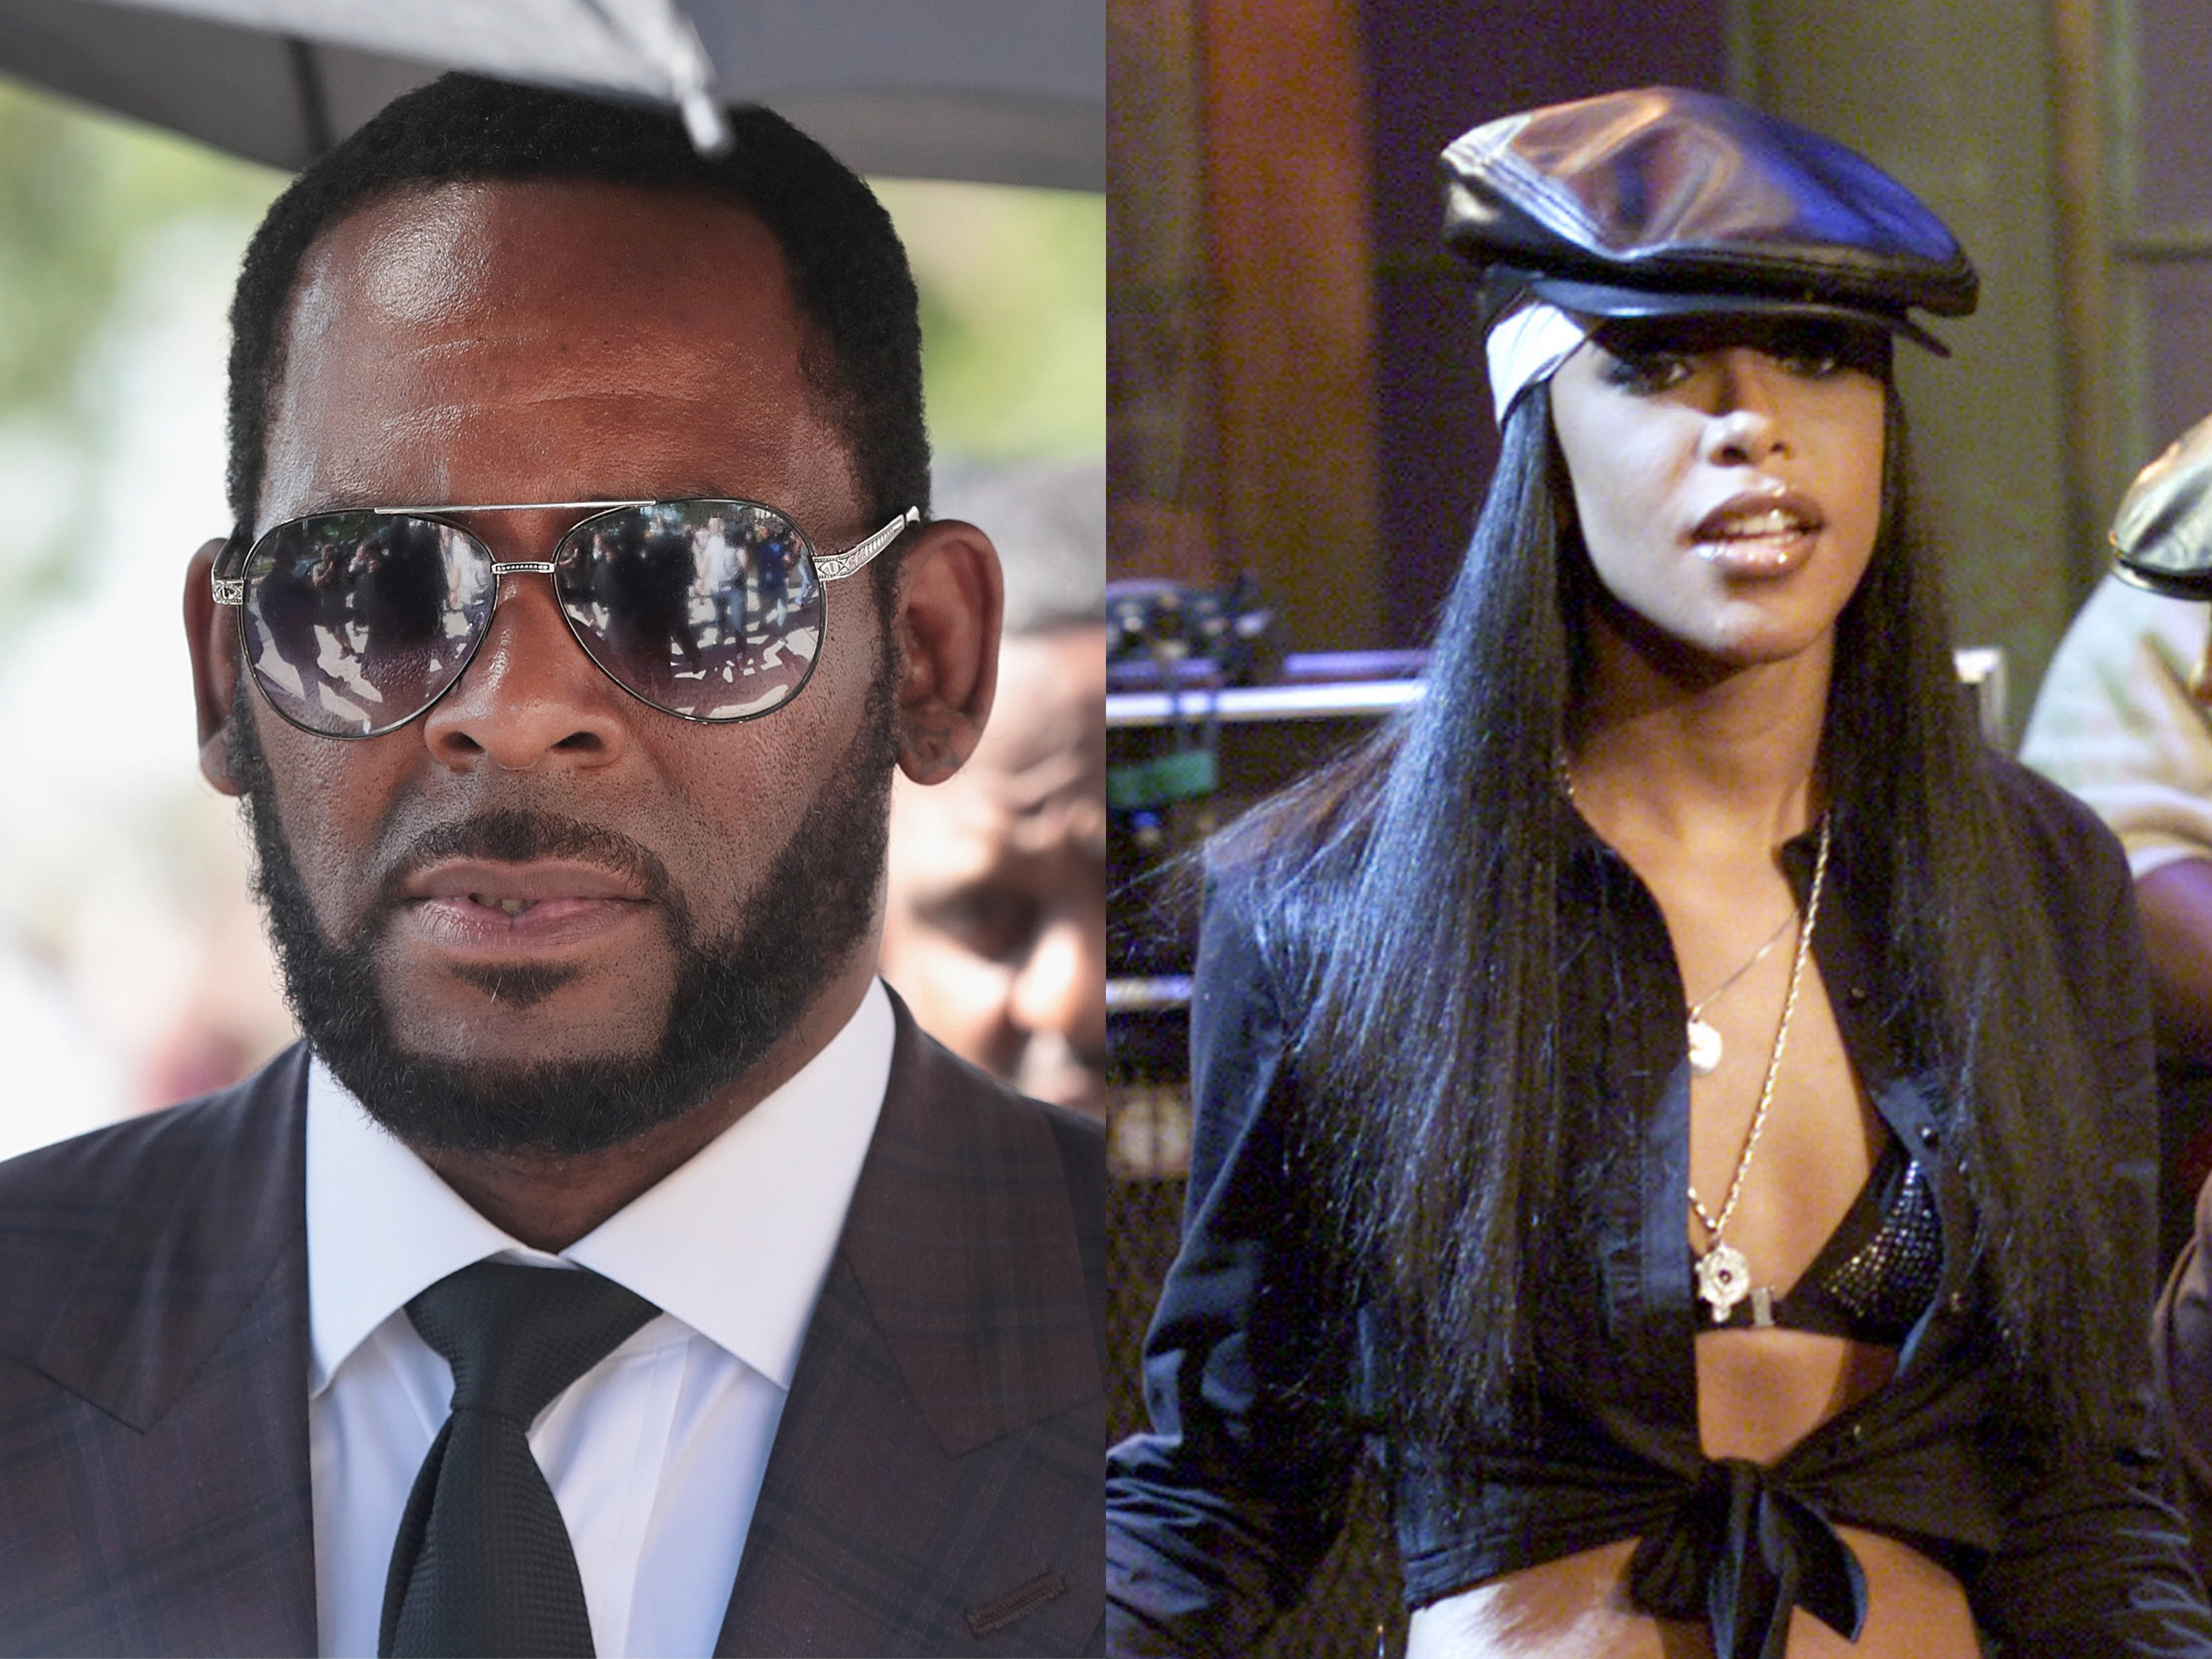 R. Kelly is being charged for allegedly bribing a public official to make a fake ID for late singer Aaliyah so she could marry R. Kelly.